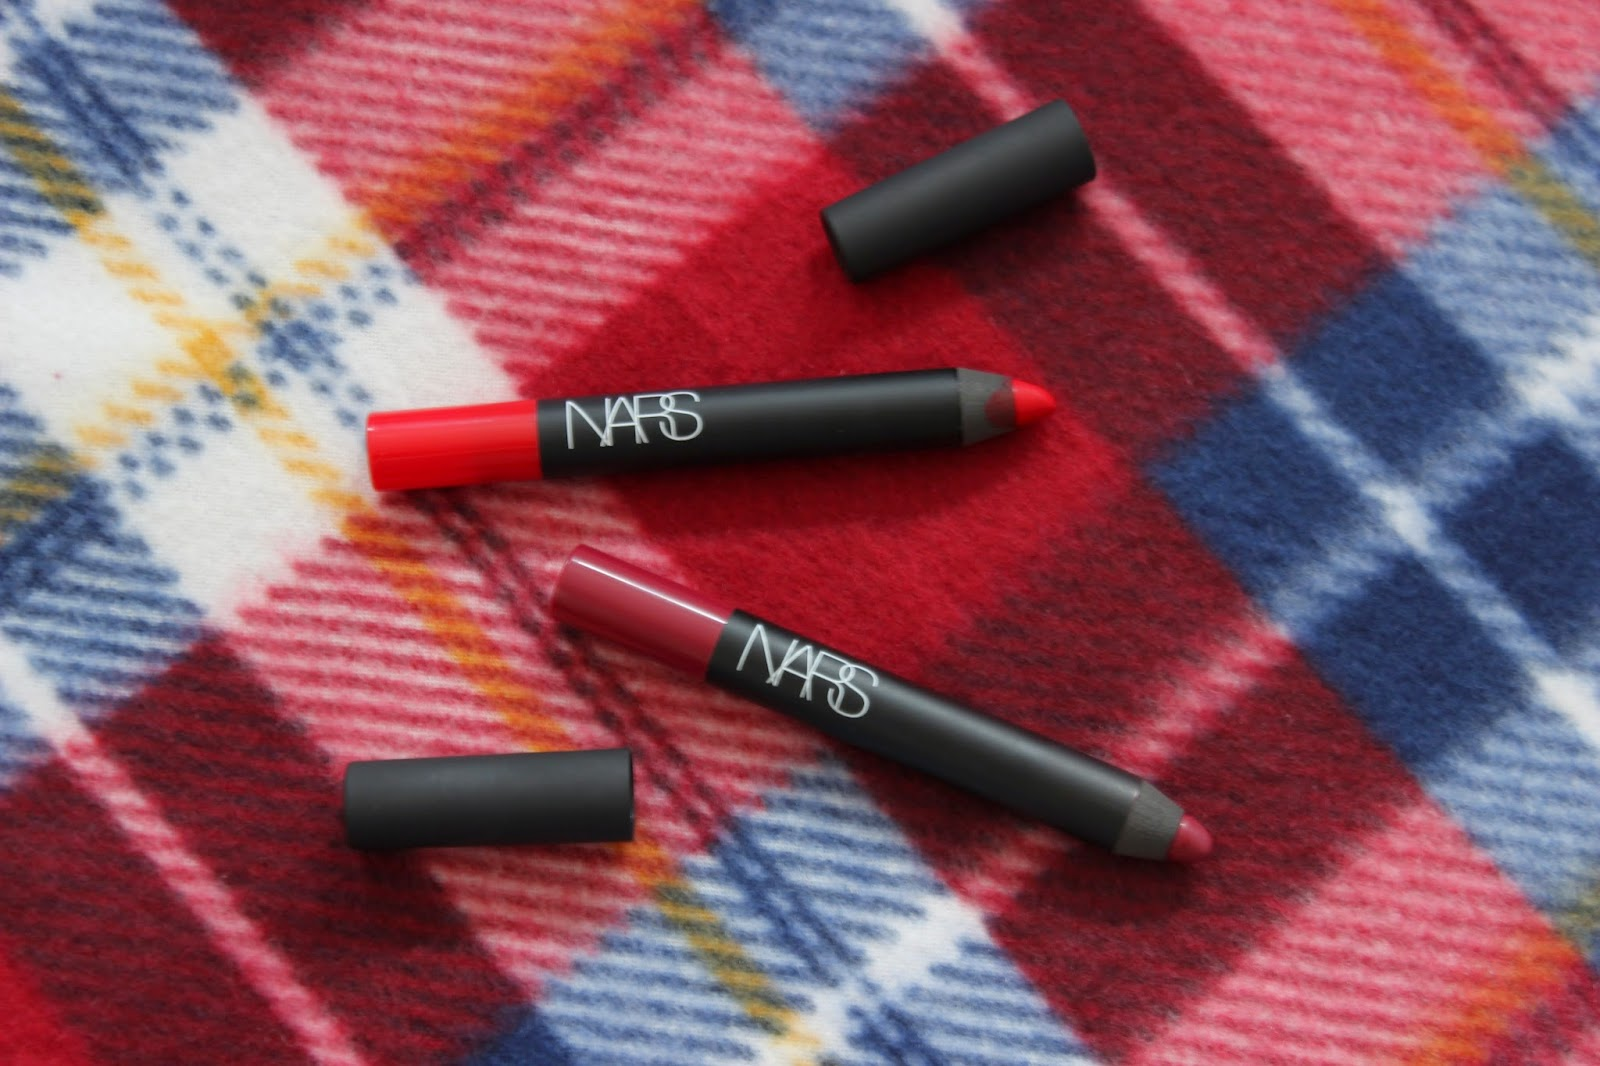 NARS Velvet Matte Lip Pencils // Dragon Girl & Damned